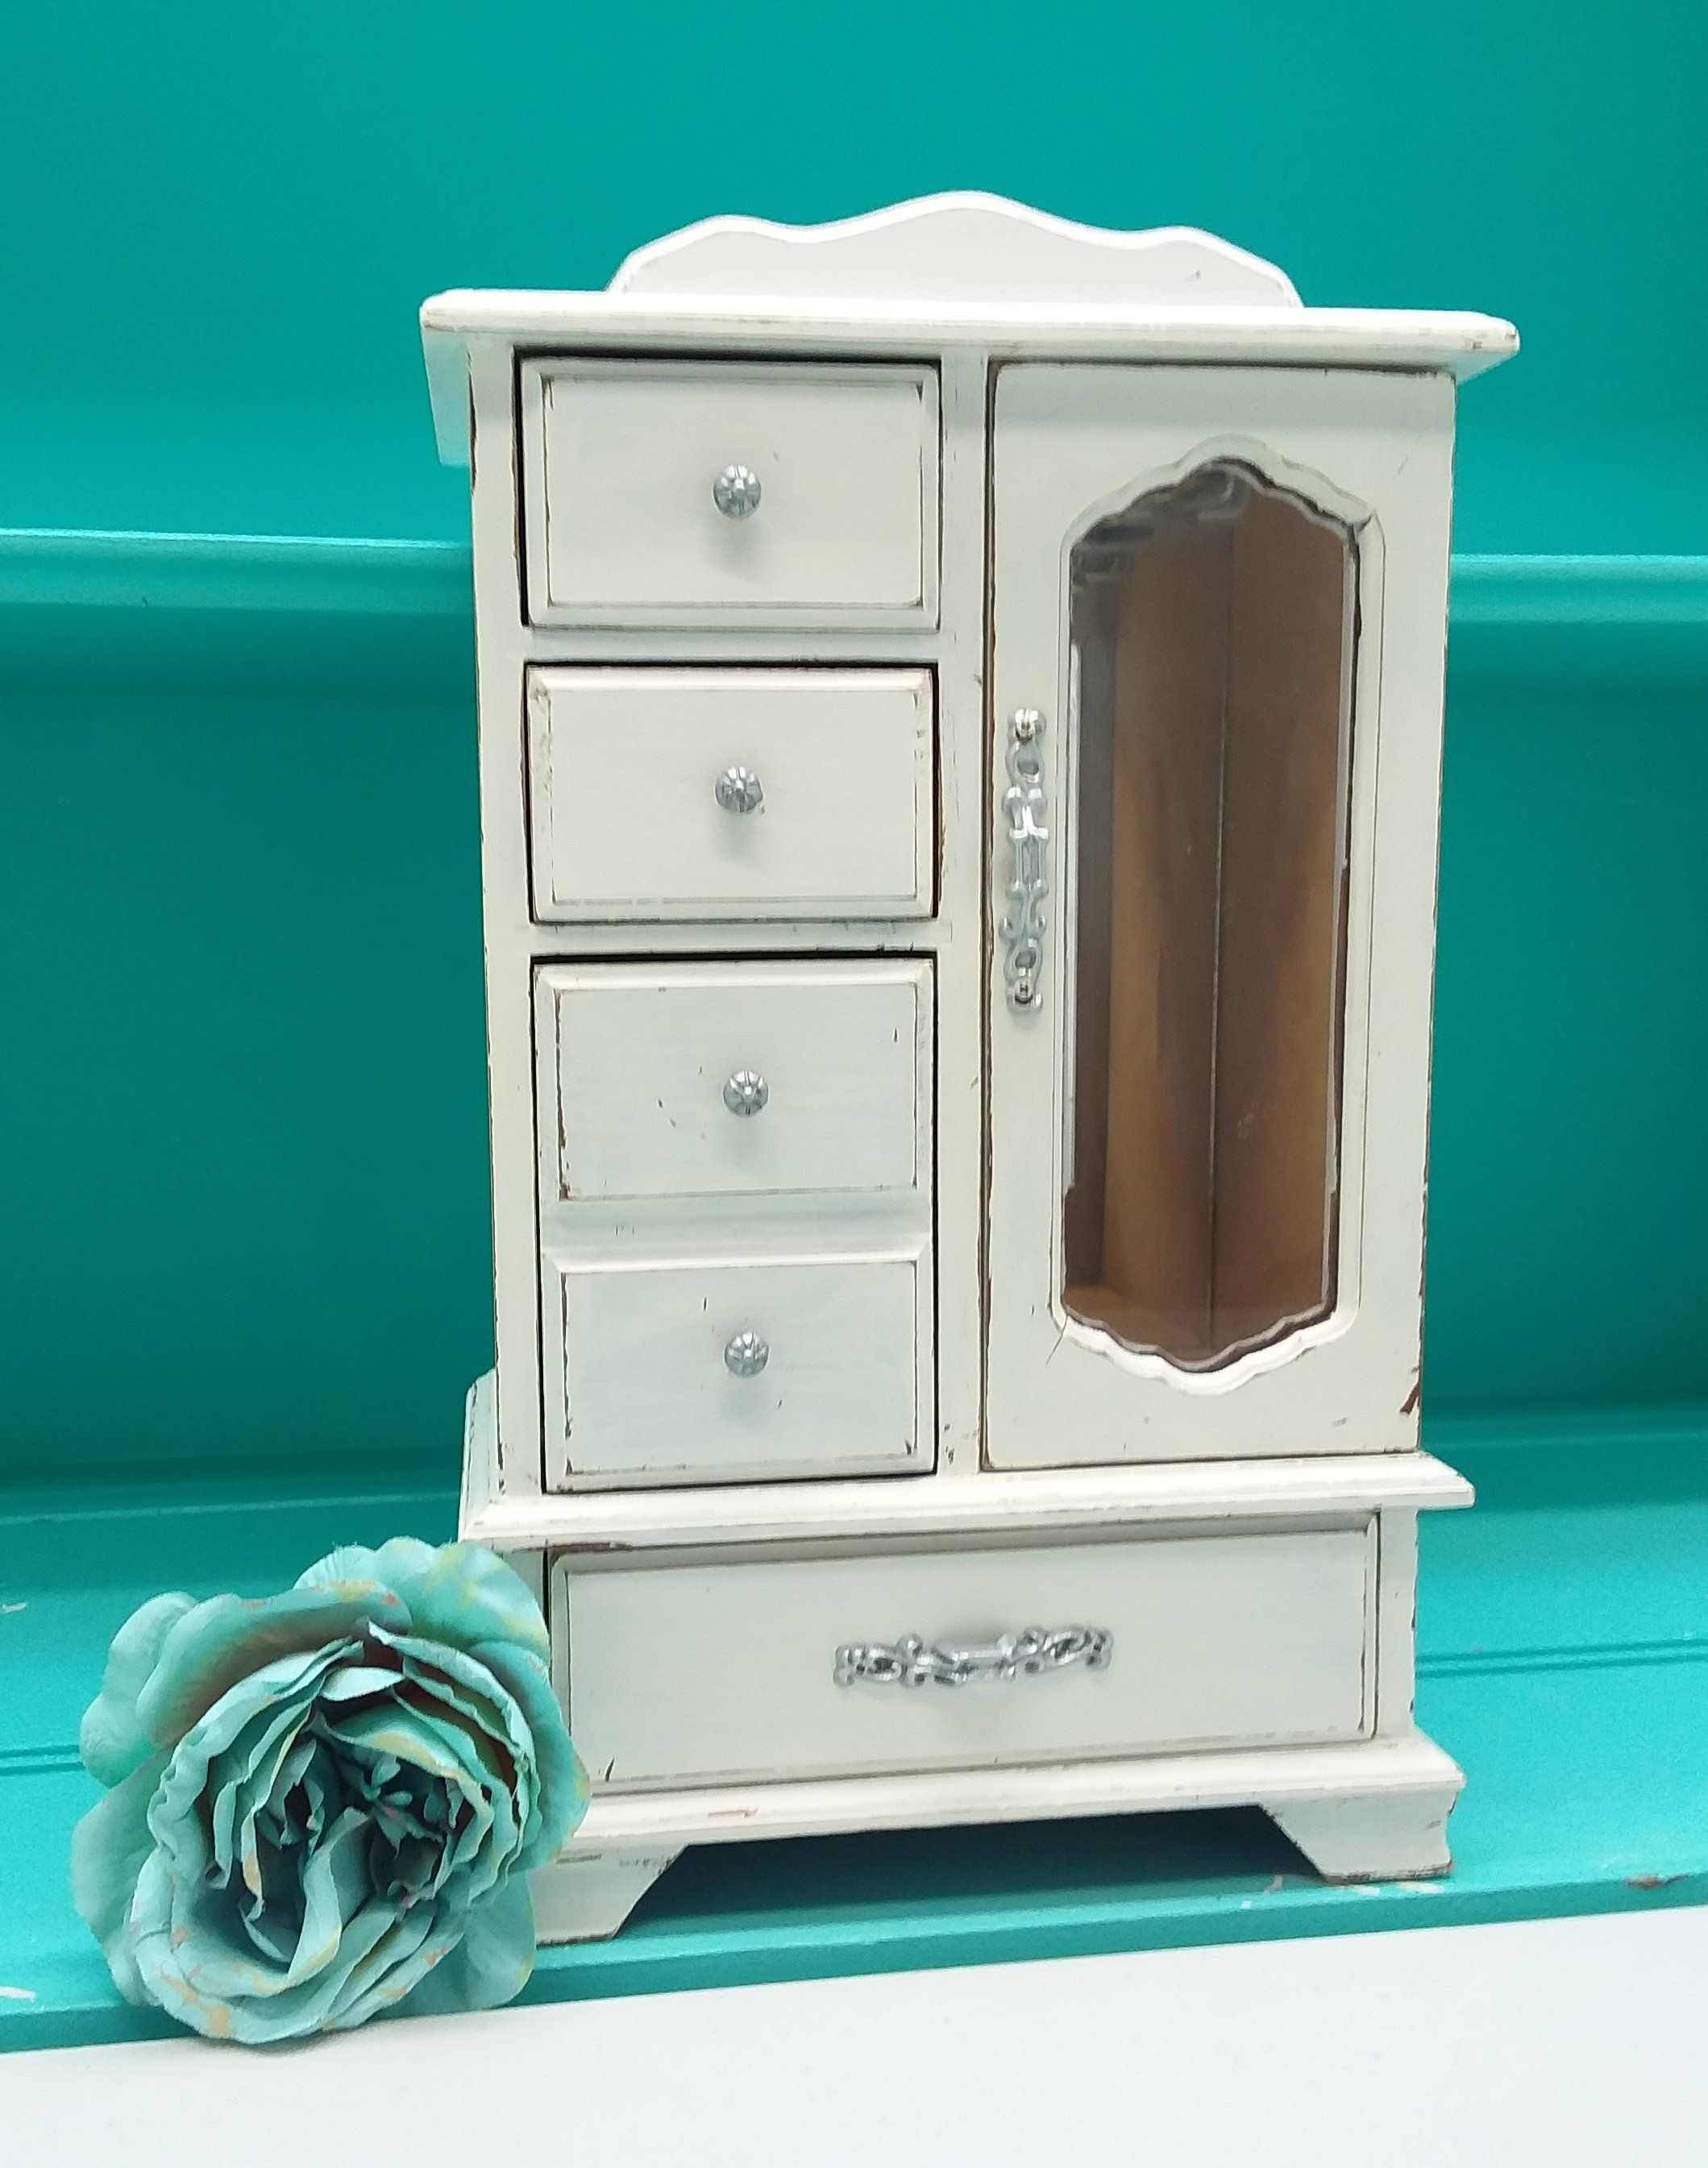 Shabby Chic Vintage Wooden Jewelry Box Armoire And Music Box Painted Off White And Distressed Upcycled Refurbished Rustic Jewelry Box With Images Wooden Jewelry Boxes Rustic Jewelry Box Shabby Chic Jewellery